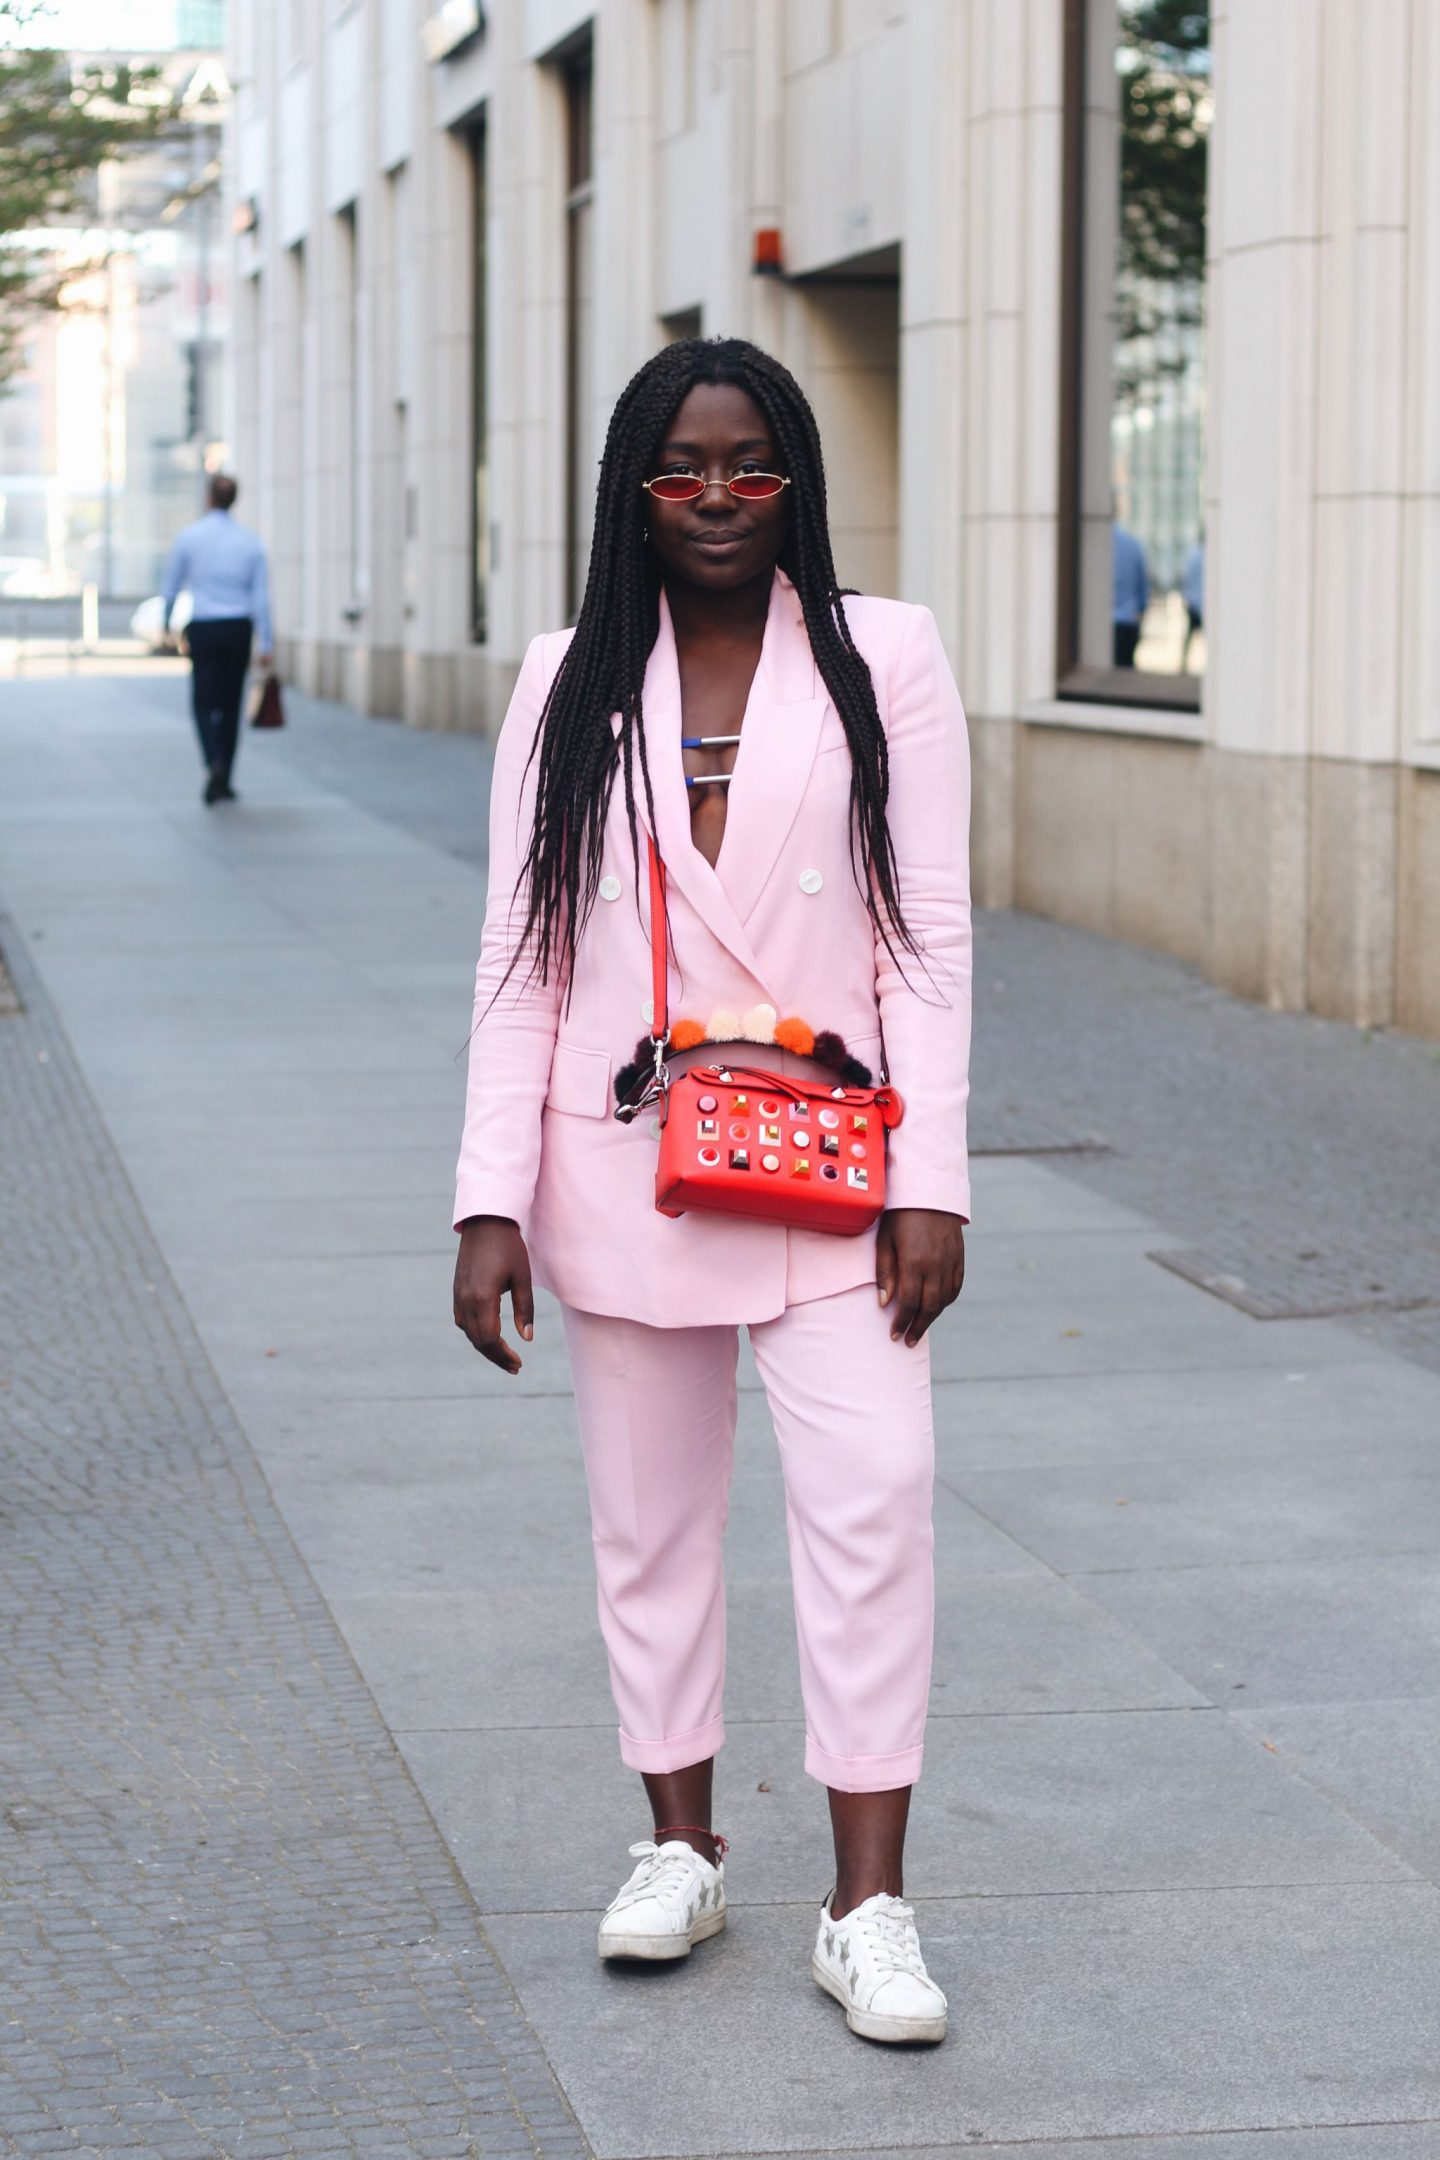 Lois_Opoku_pink_suit_fendi_by_the_way_bag_fasion_week_street_style_lisforlois_1